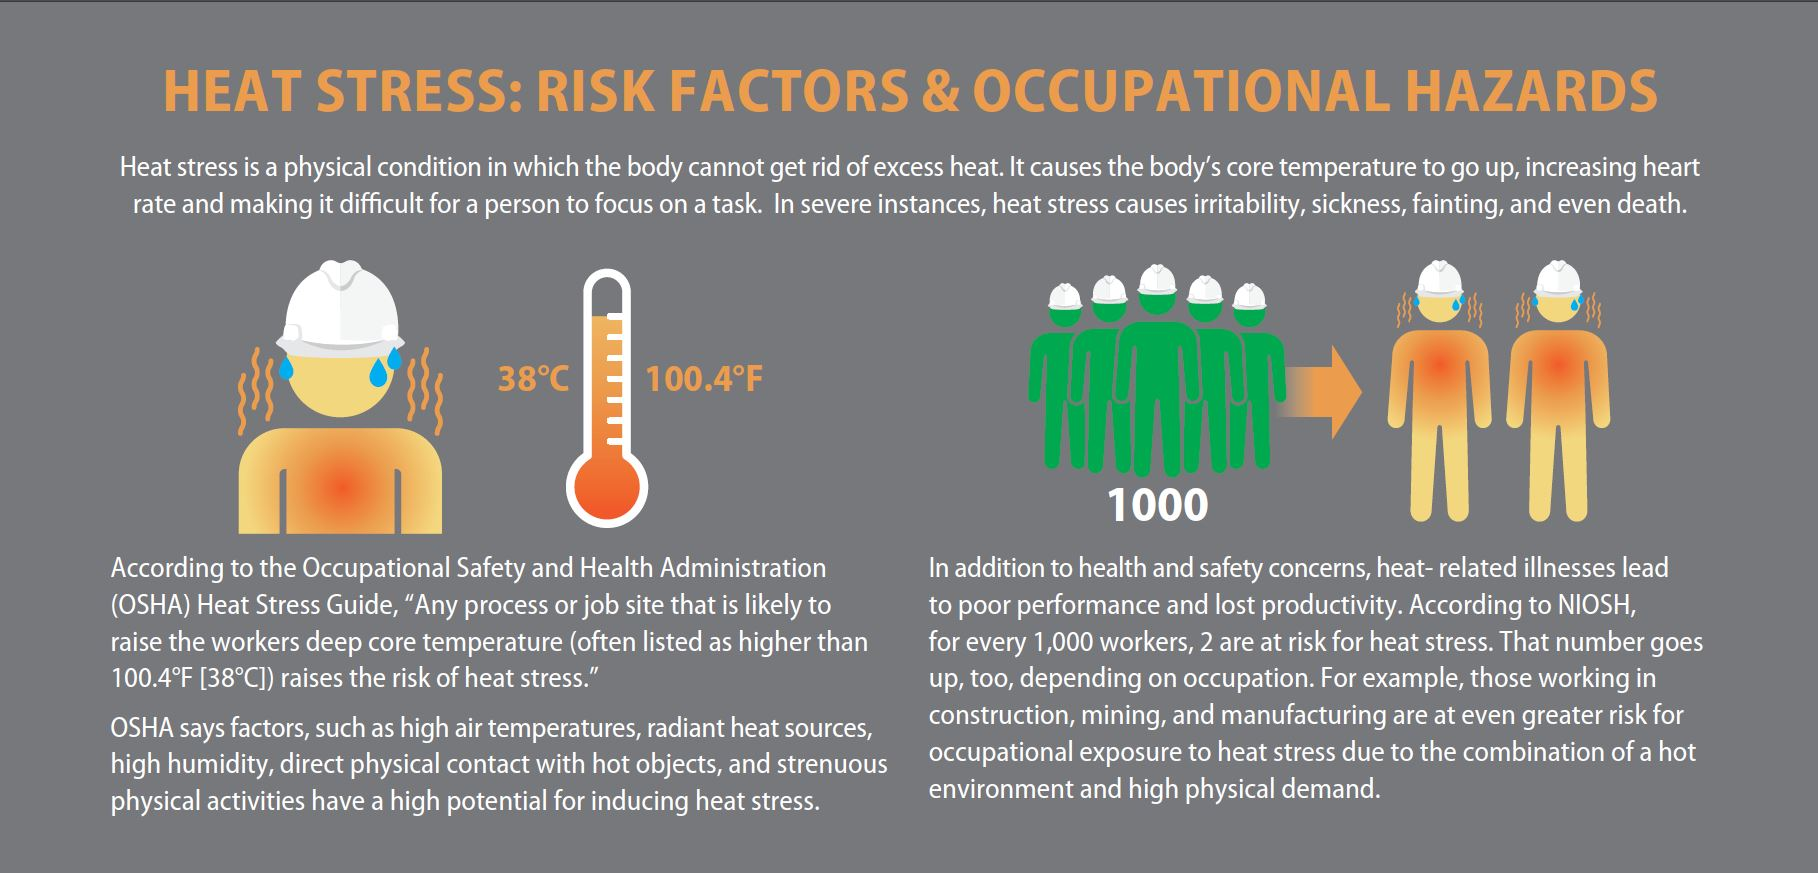 infographic showing the risk factors and occupational hazards associated with heat stress